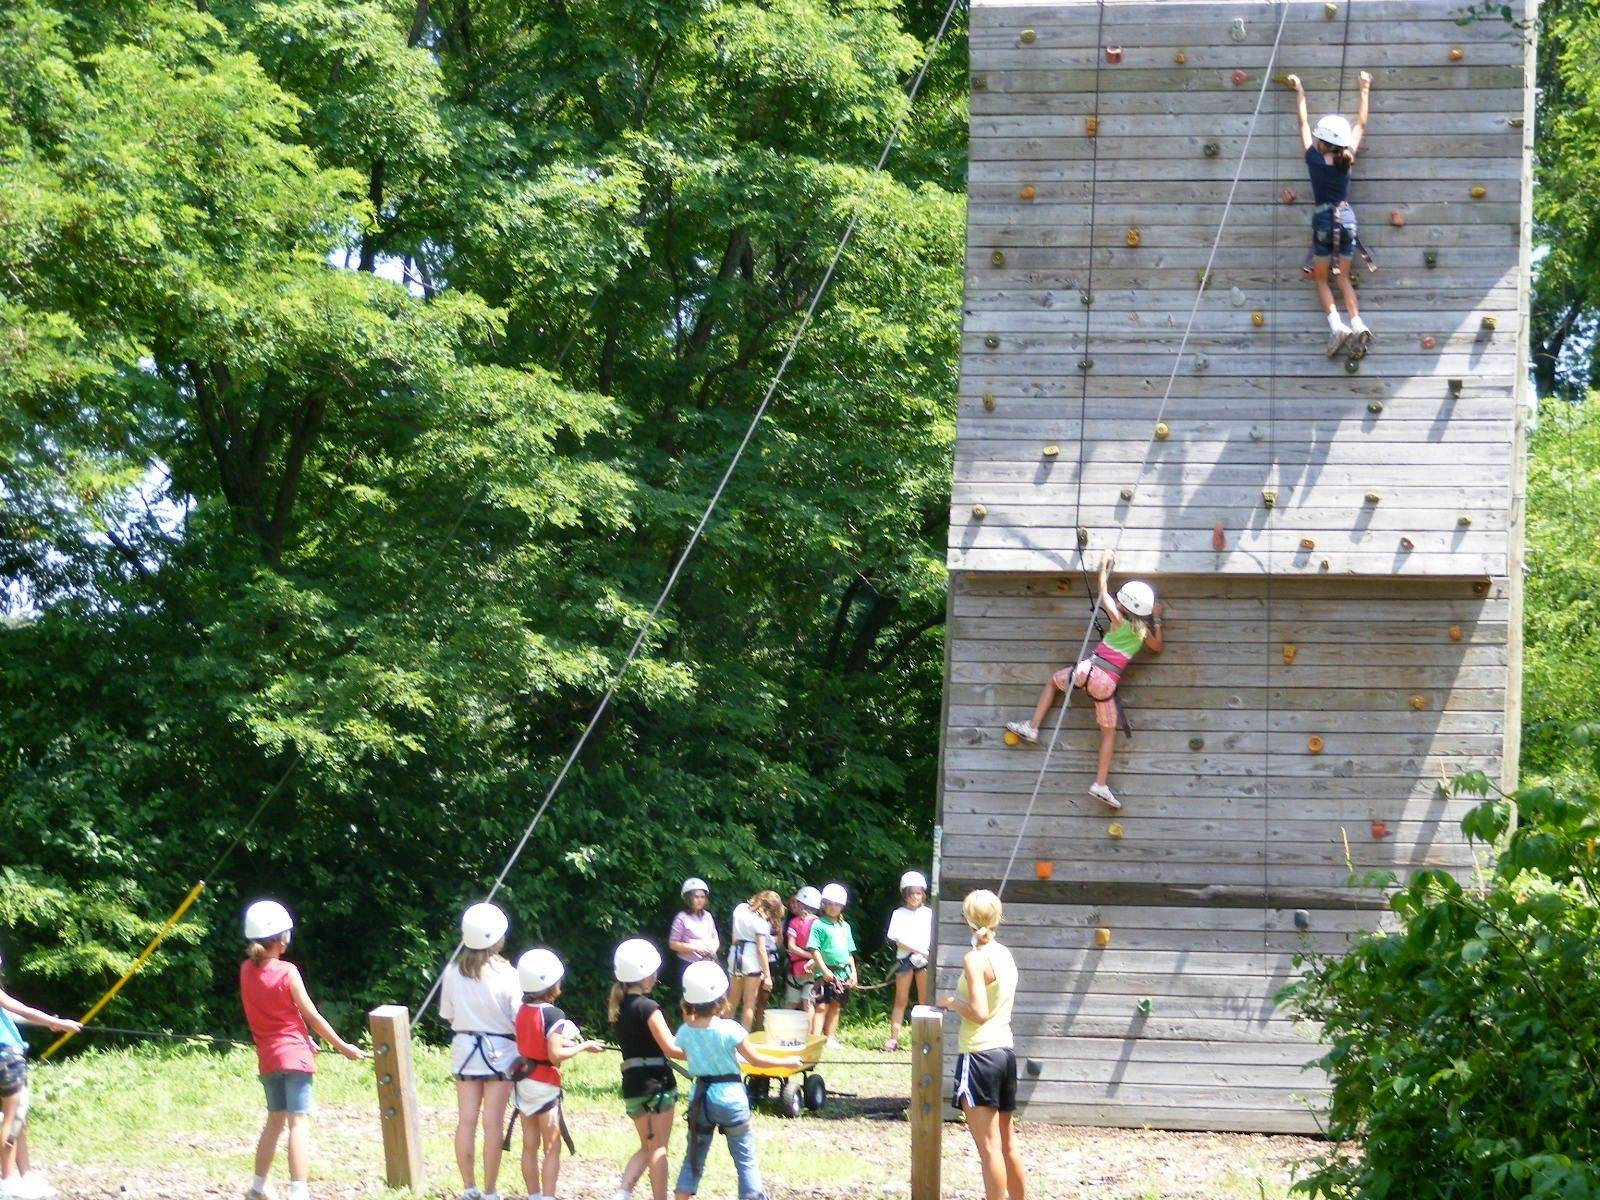 The 40-foot-tall climbing wall offers four difficulty levels to challenge all students.